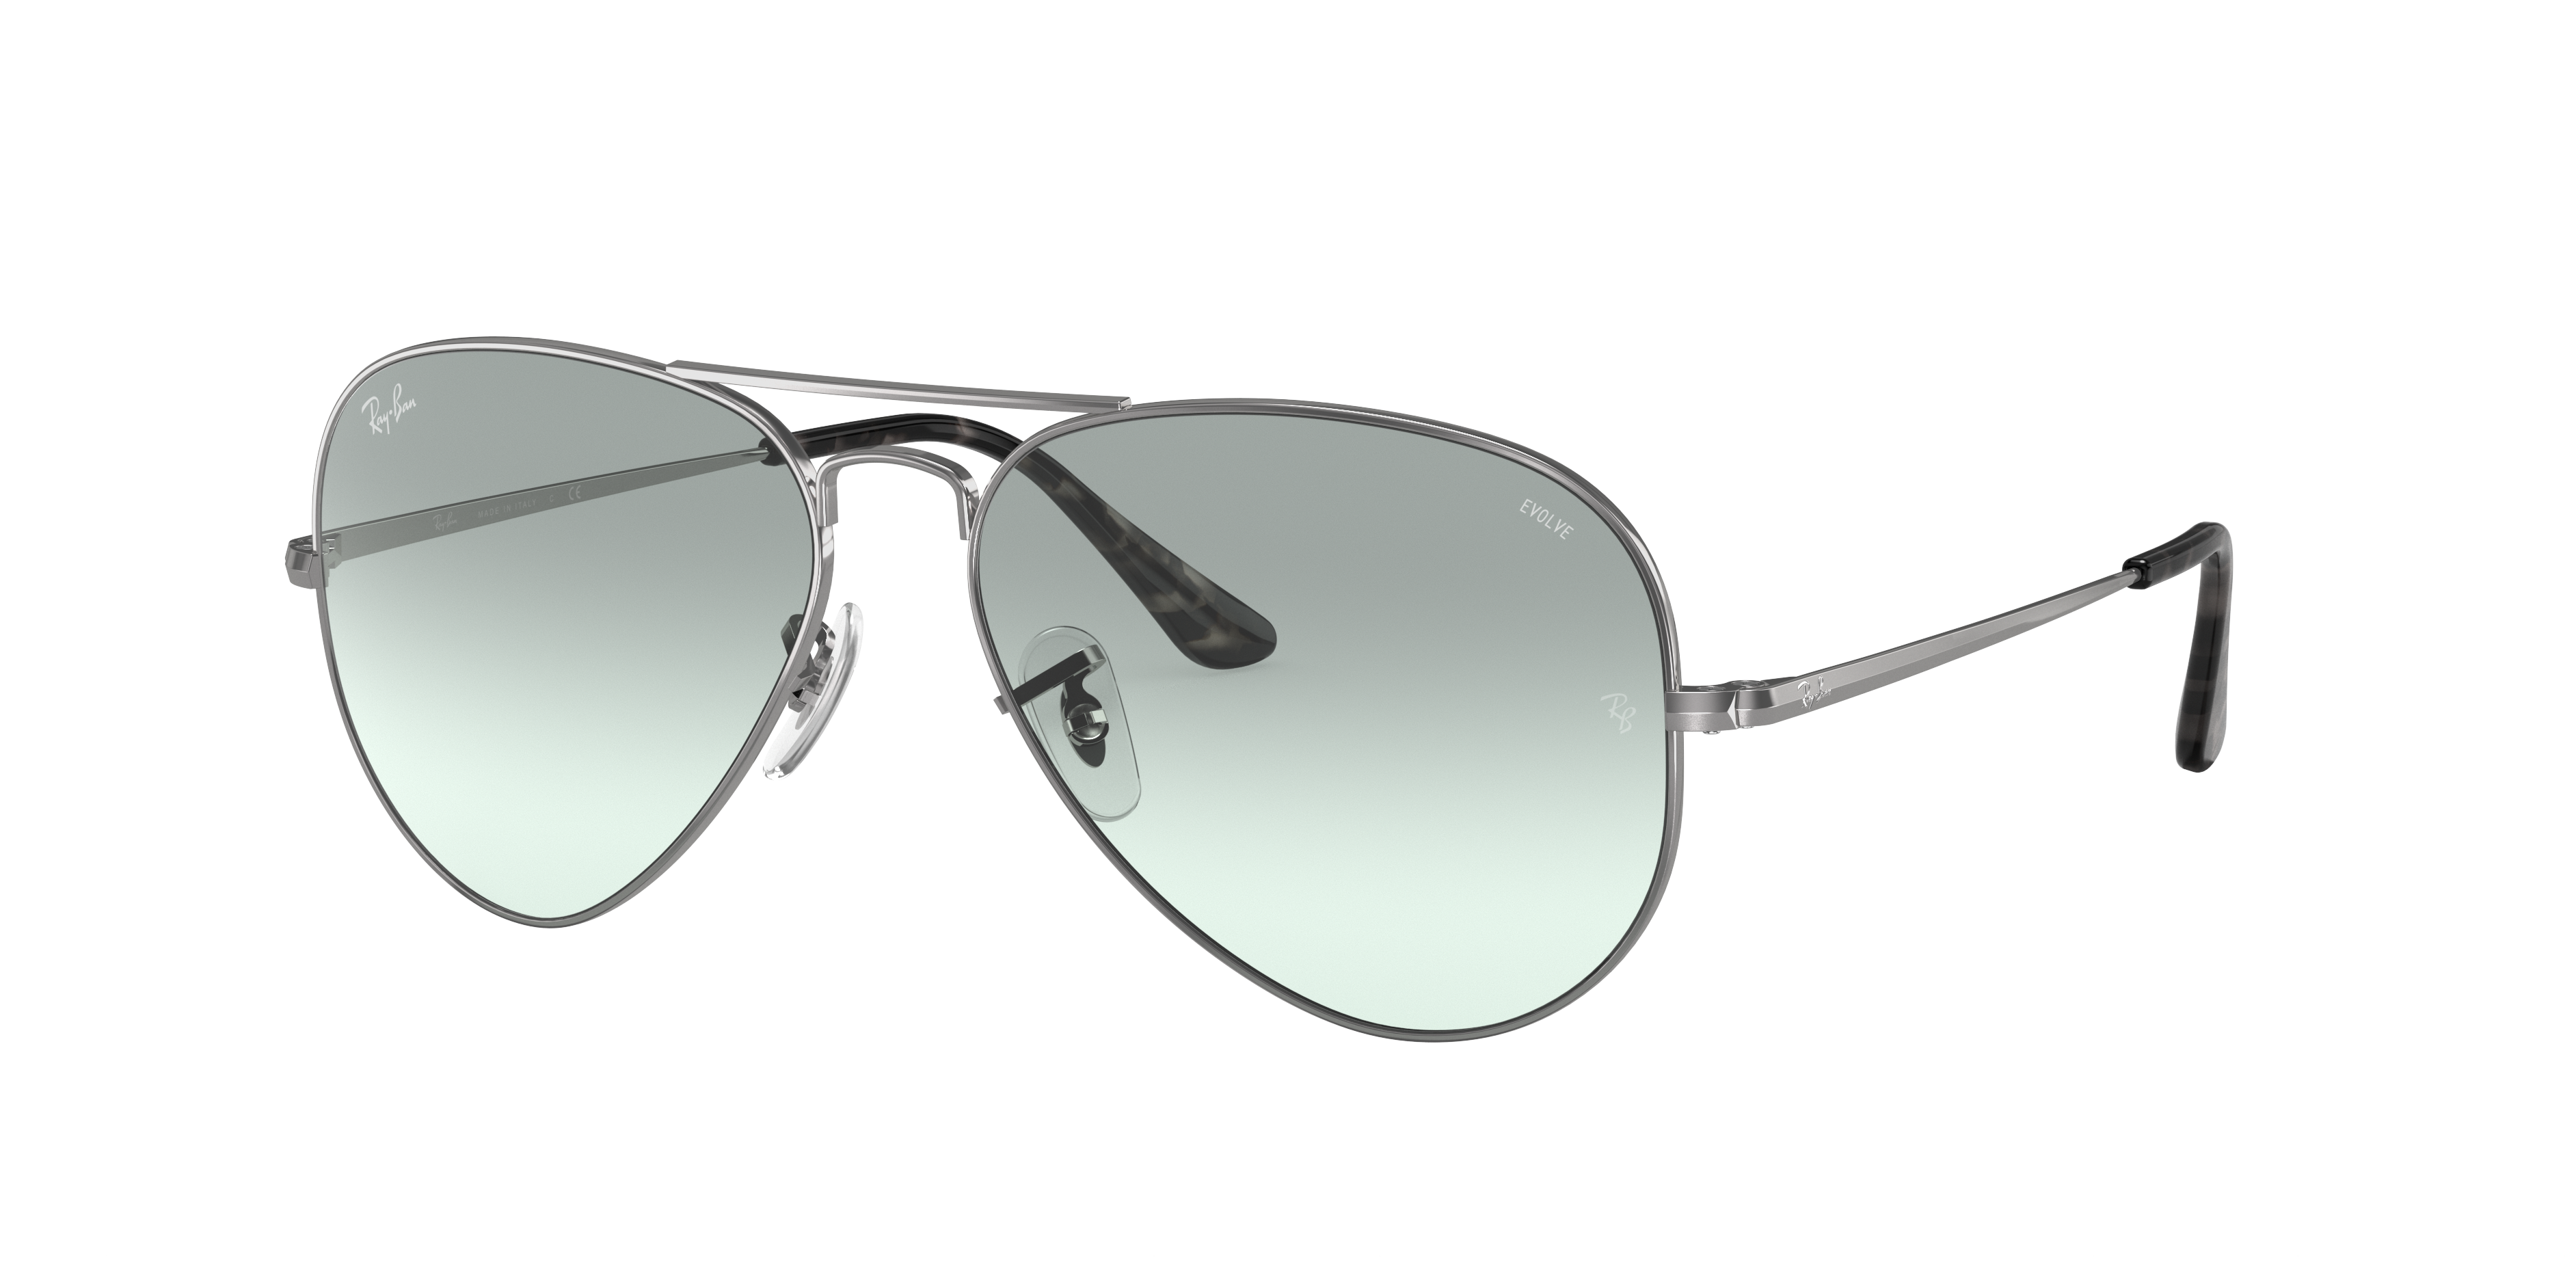 Ray-Ban Rb3689 Washed Evolve Silver, Blue Lenses - RB3689